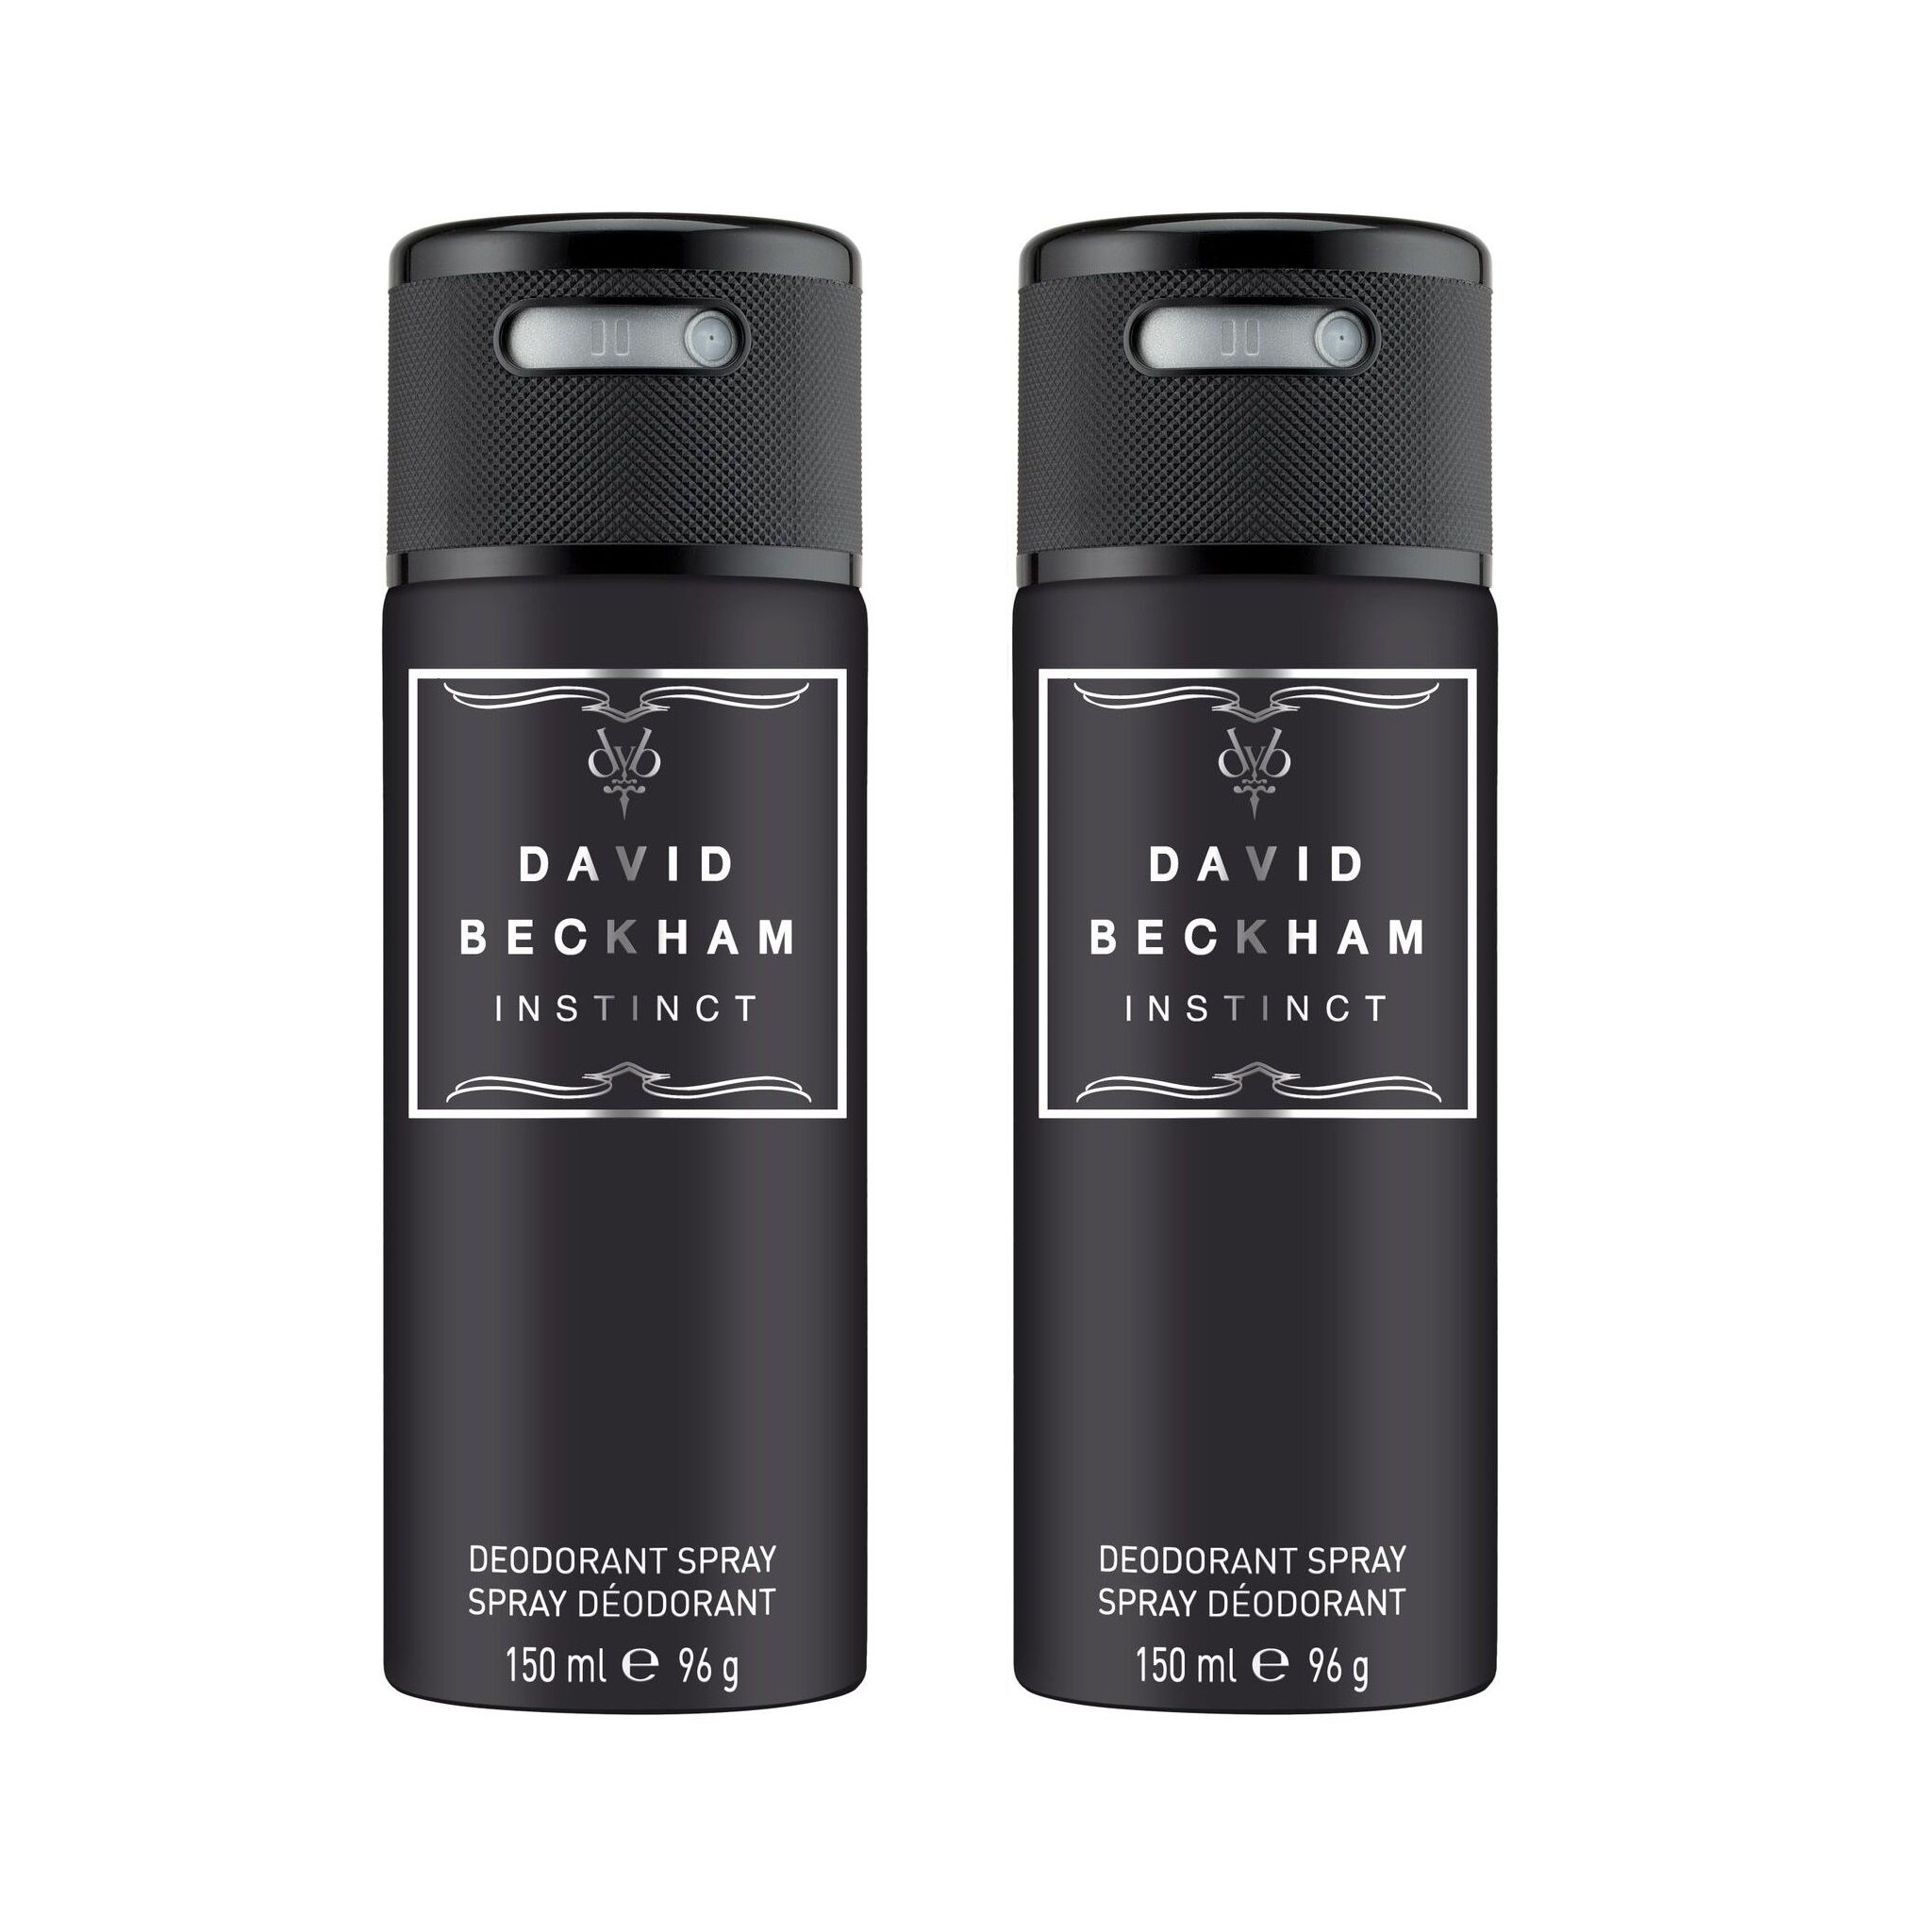 David Beckham - 2x Instinct Deodorant Spray 150 ml